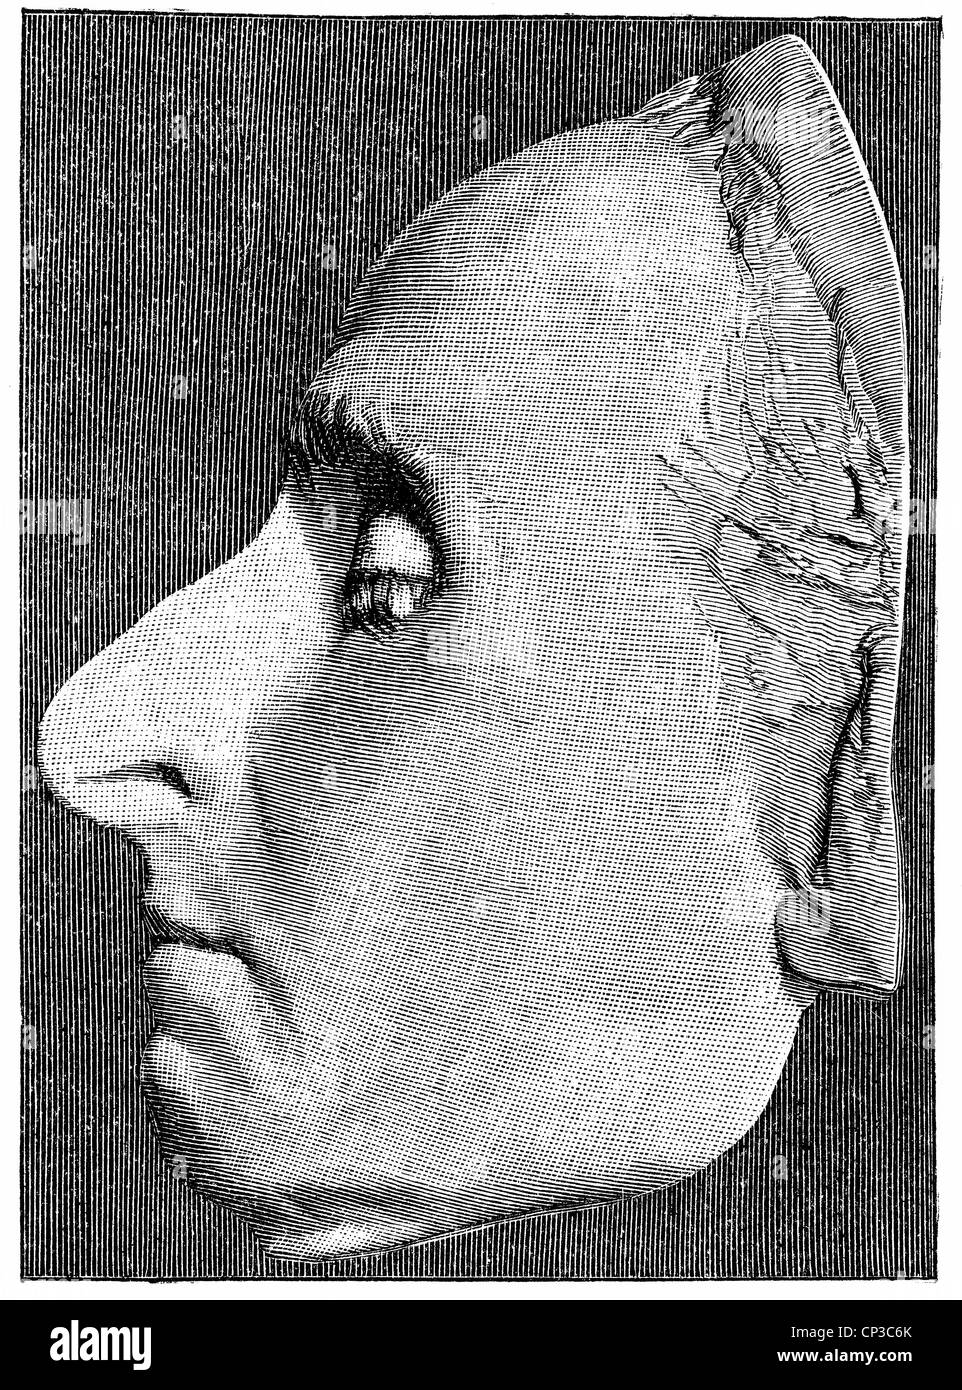 the death mask of Blaise Pascal, 1623 - 1662, a French mathematician, physicist, philosopher, writer and Catholic - Stock Image